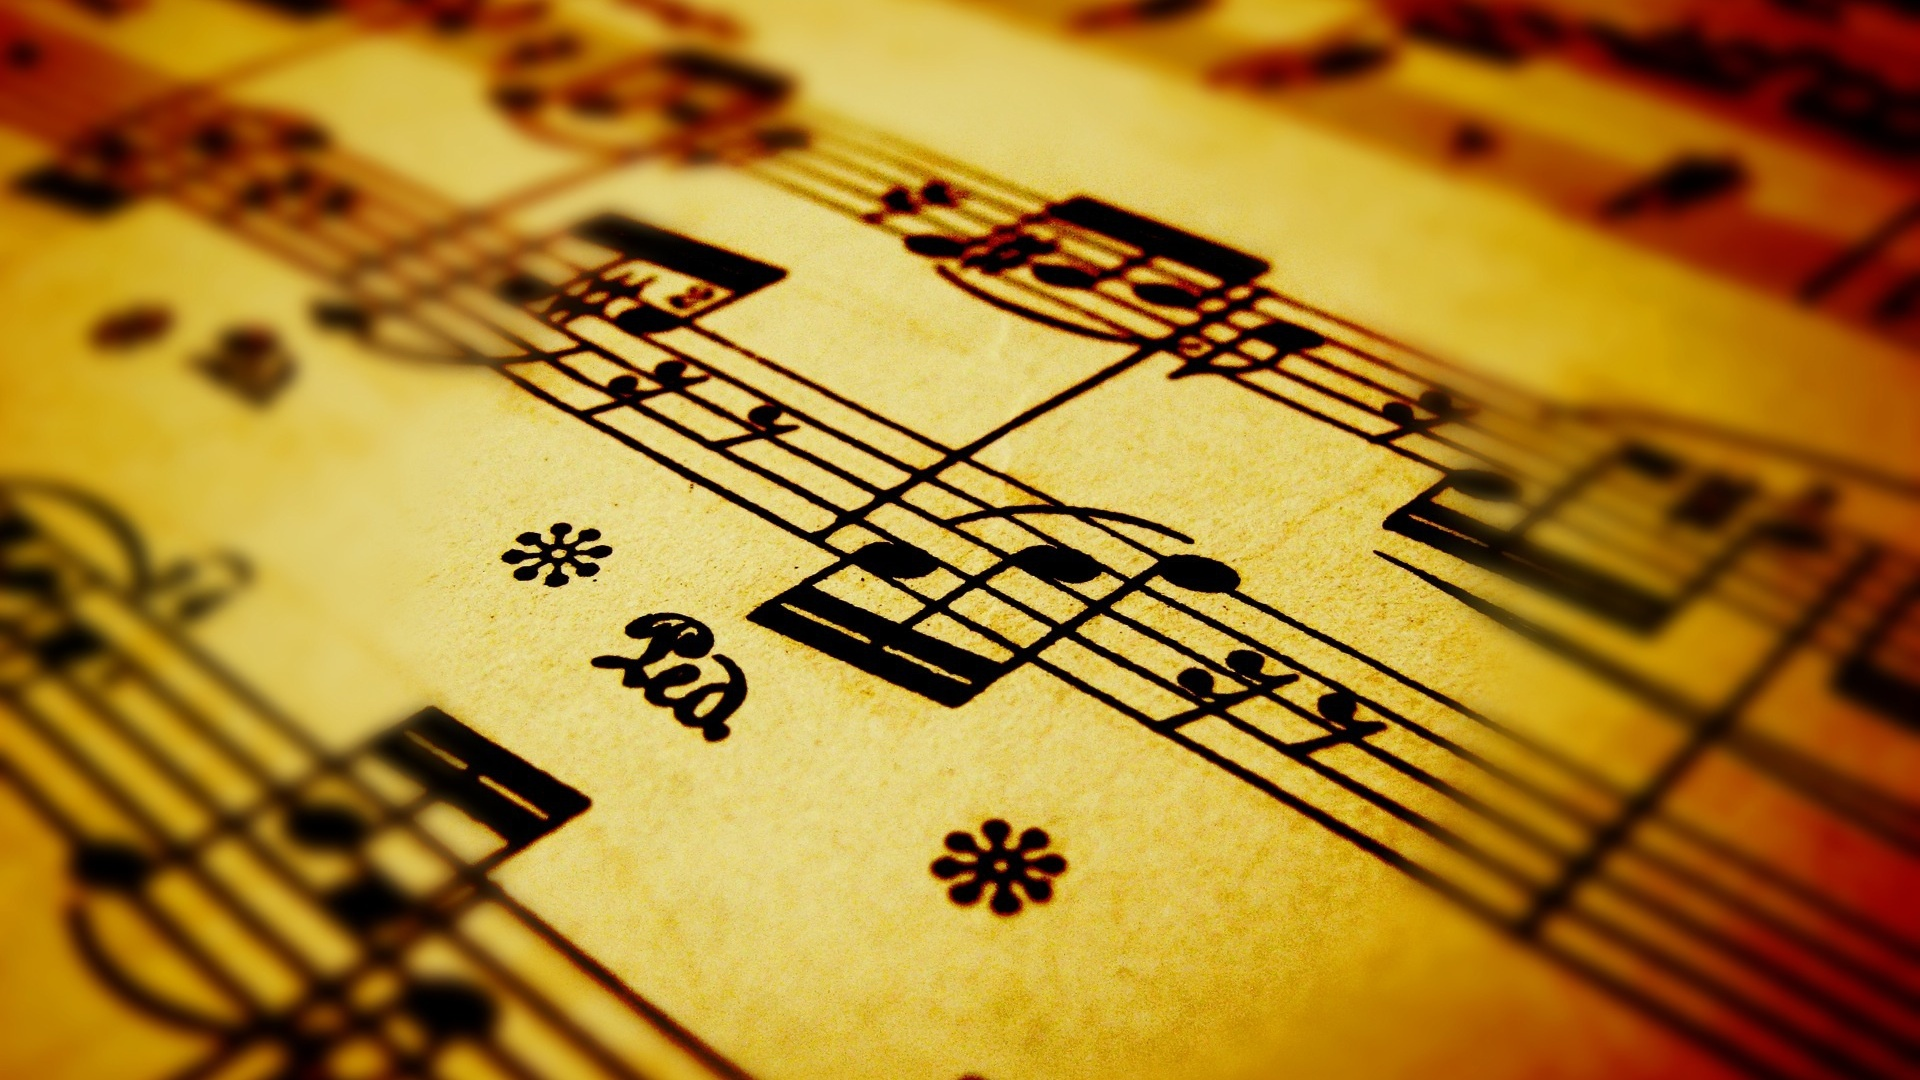 Amazing Wallpaper High Resolution Music - music-notes-background_090806499  Picture_154191.jpg